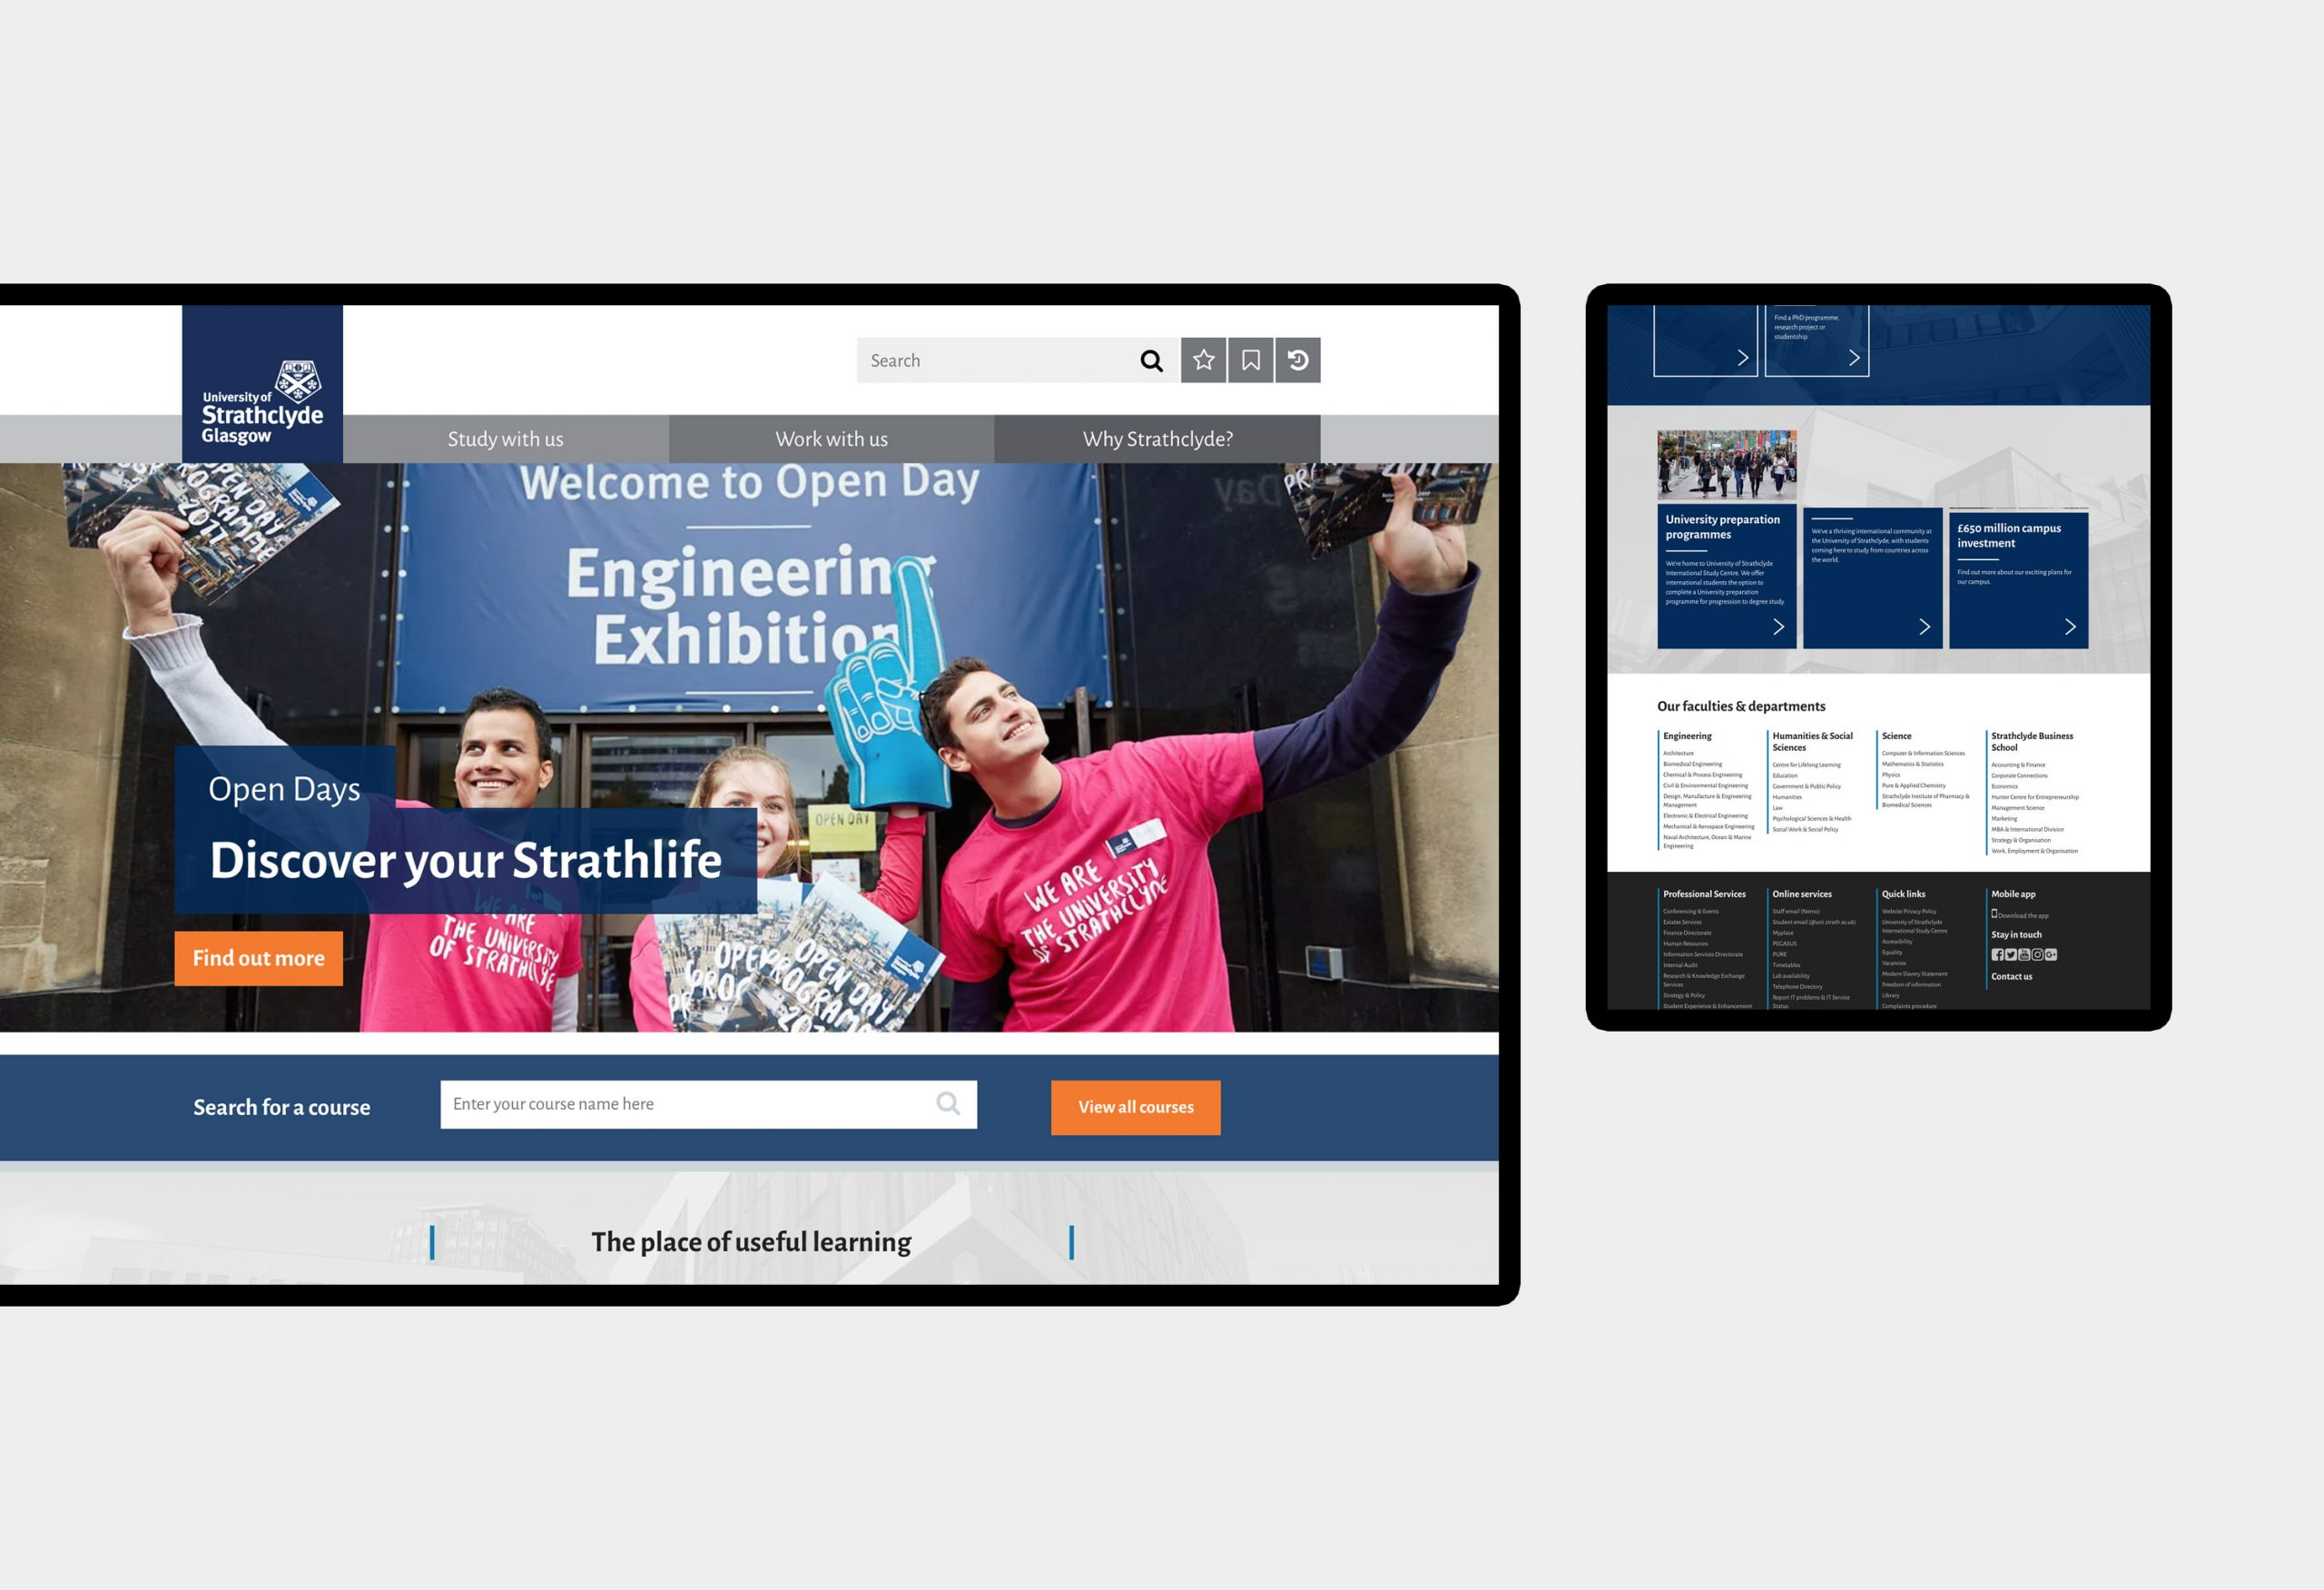 University of Strathclyde - website design